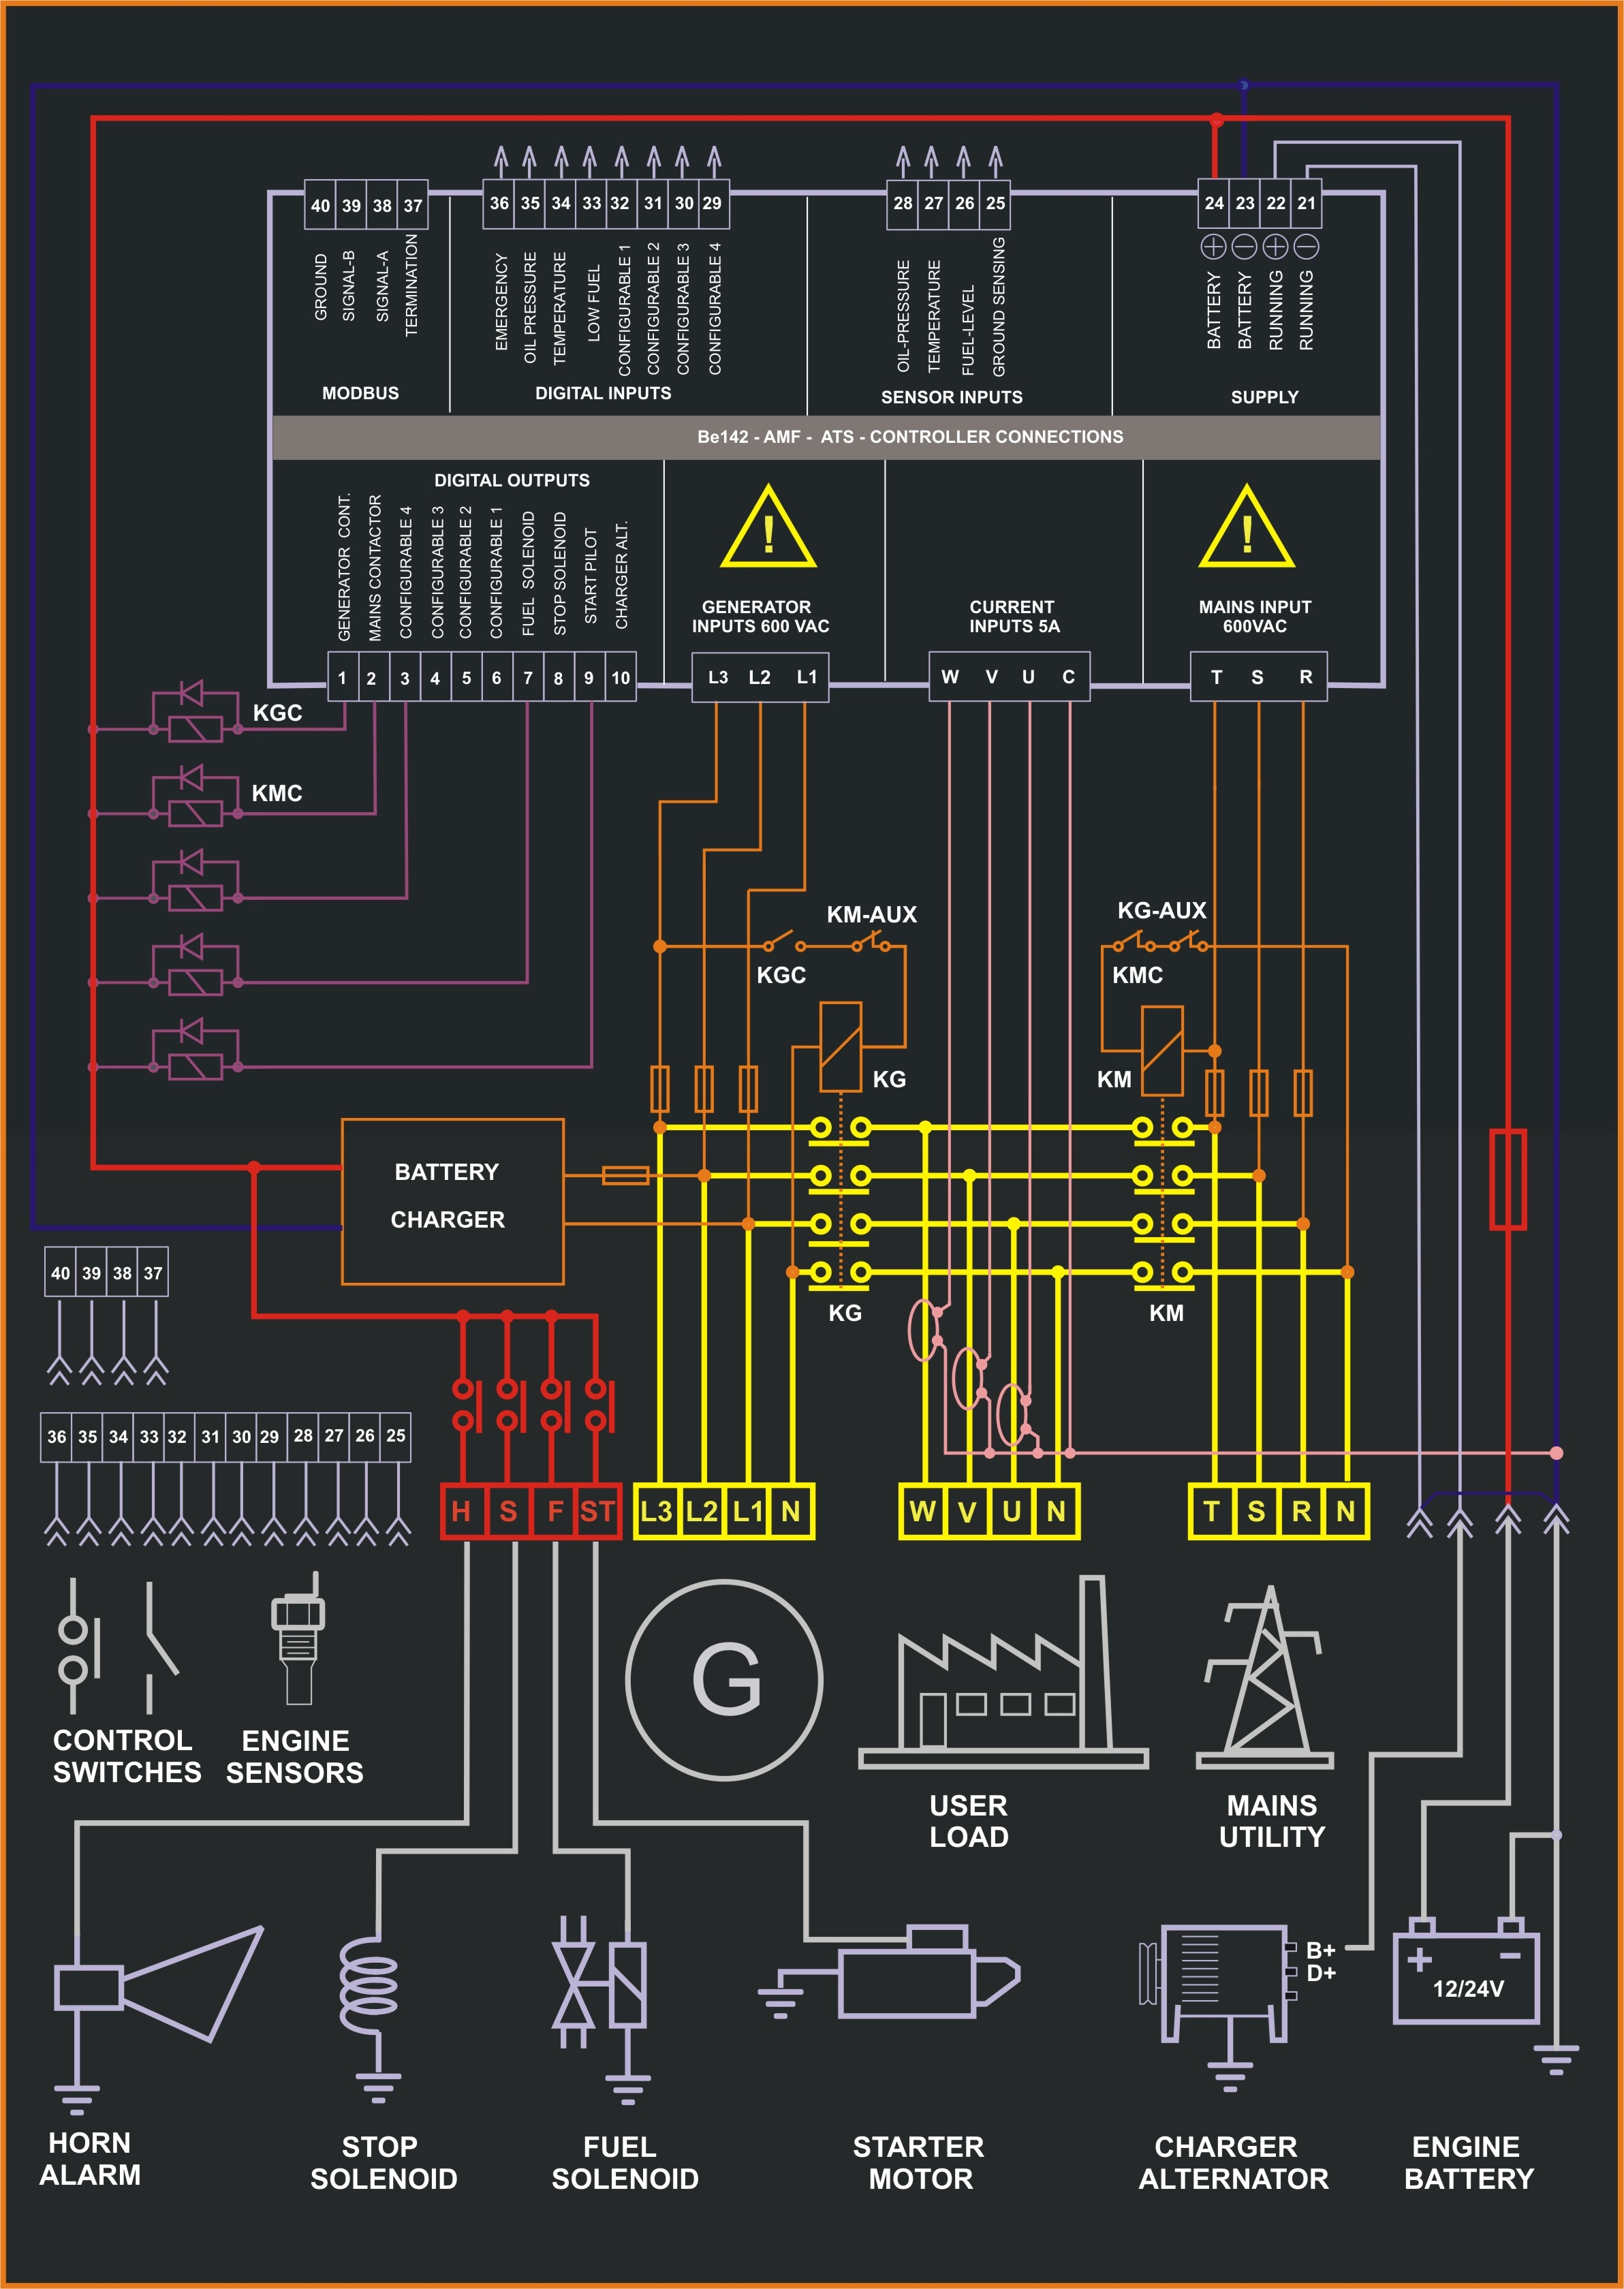 AMF Control Panel Circuit Diagram Be142 automatic mains failure control panel genset controller controller wire diagram for 3246e2 lift at fashall.co